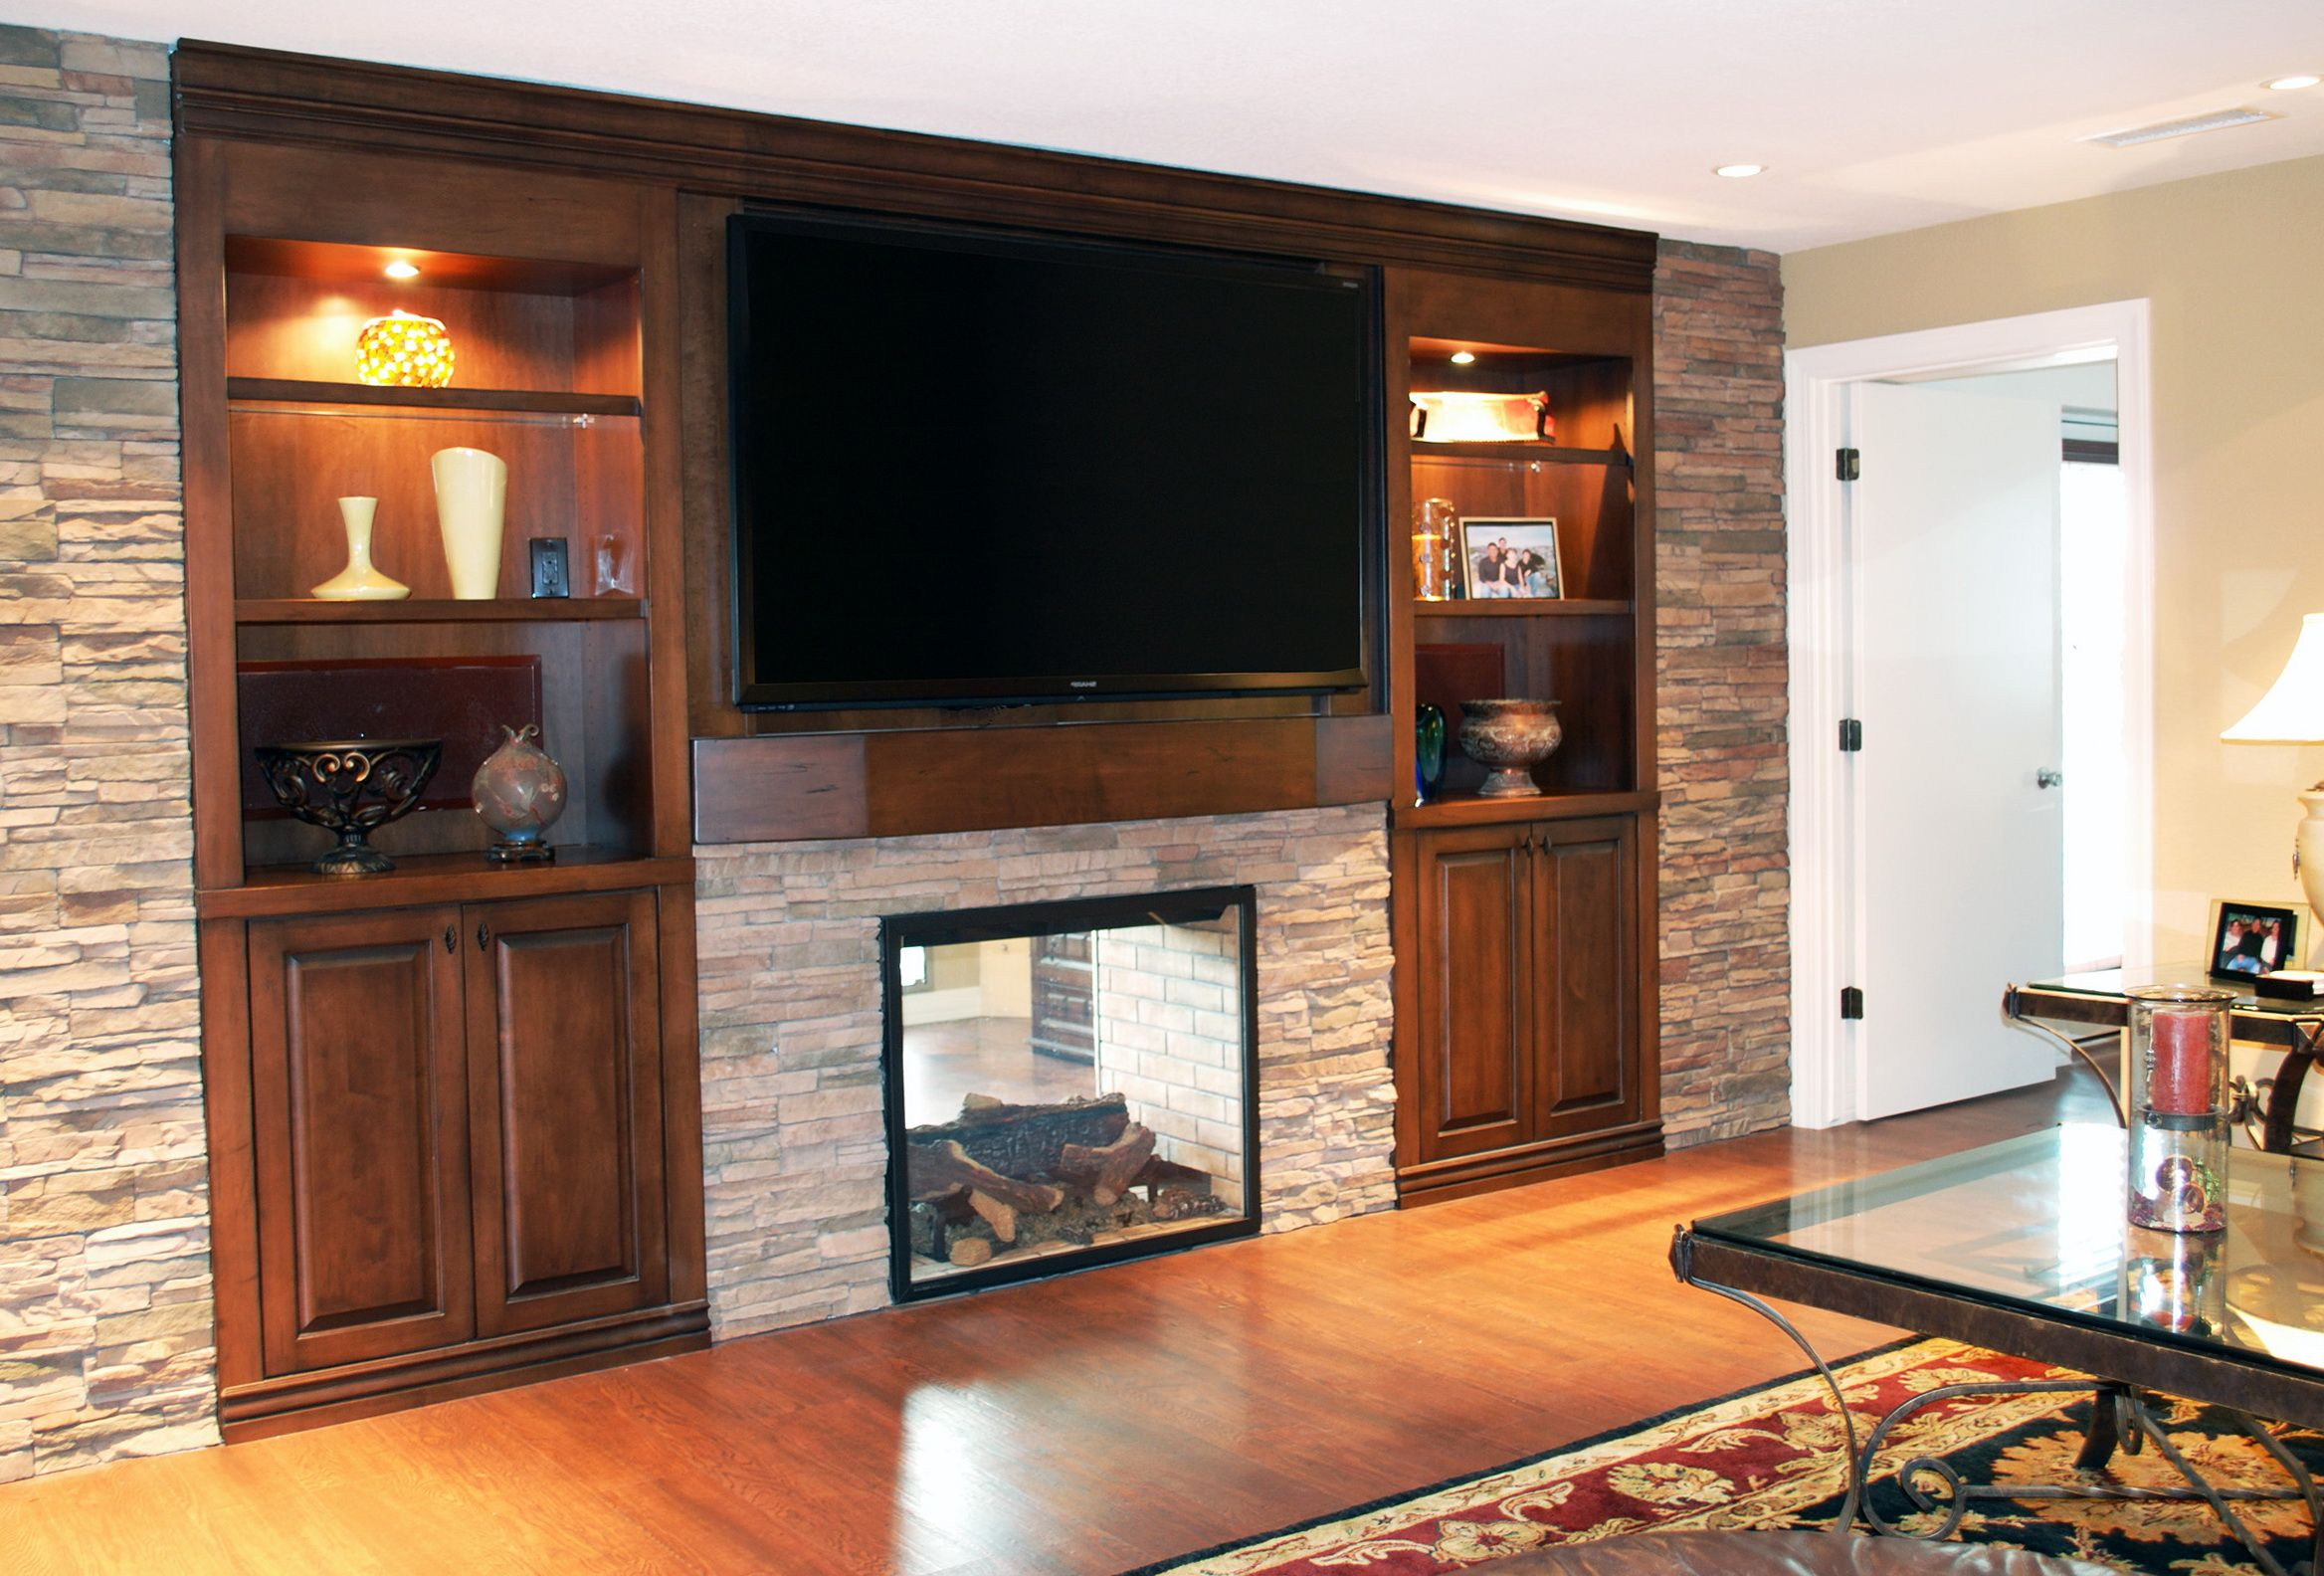 Wall Entertainment Center With Fireplace | Fireplace | Pinterest ...